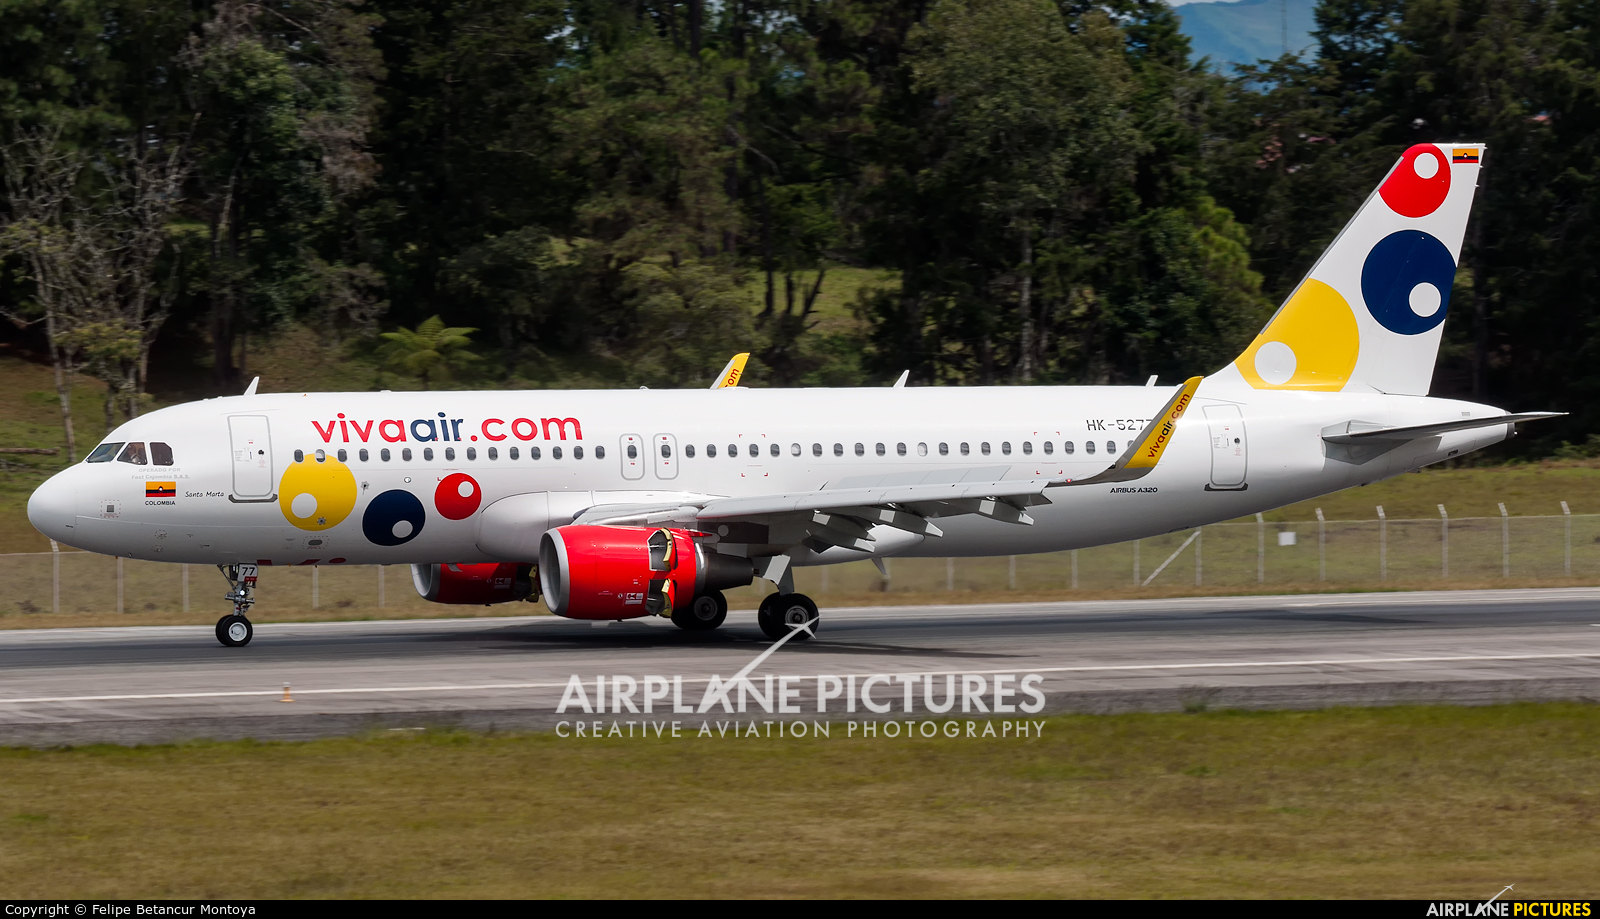 Viva Air HK-5277 aircraft at Medellin - Jose Maria Cordova Intl